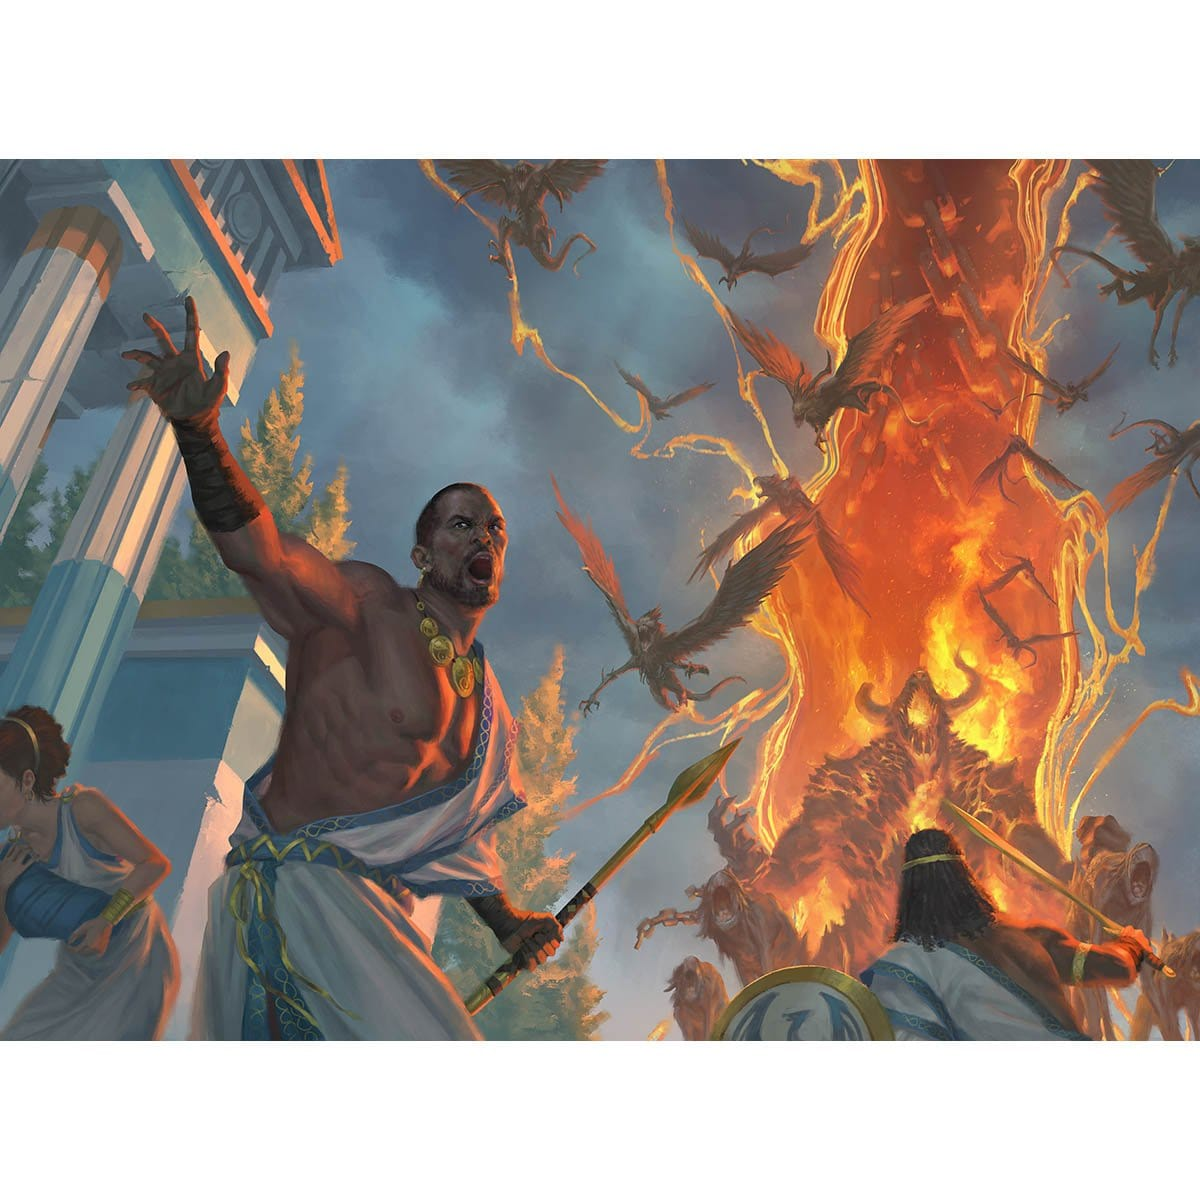 Underworld Breach Print - Print - Original Magic Art - Accessories for Magic the Gathering and other card games